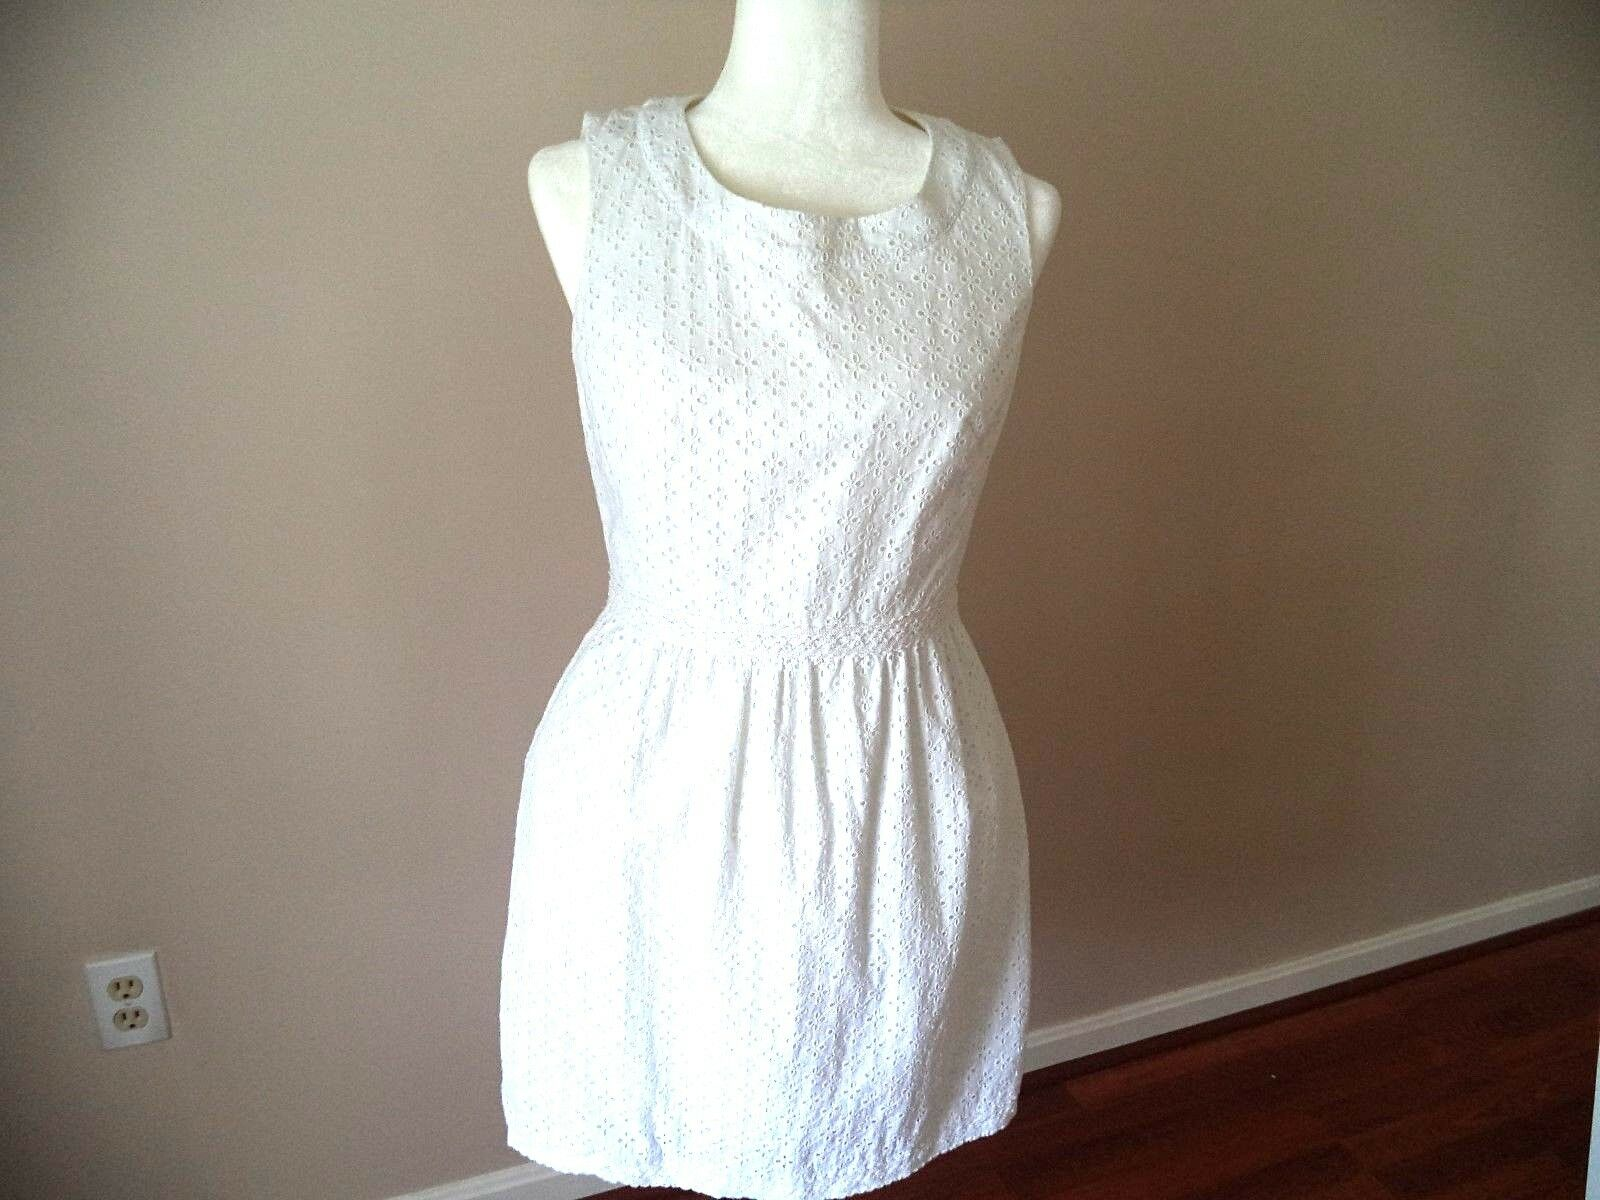 VINEYARD VINES White Eyelet Dress Size 6